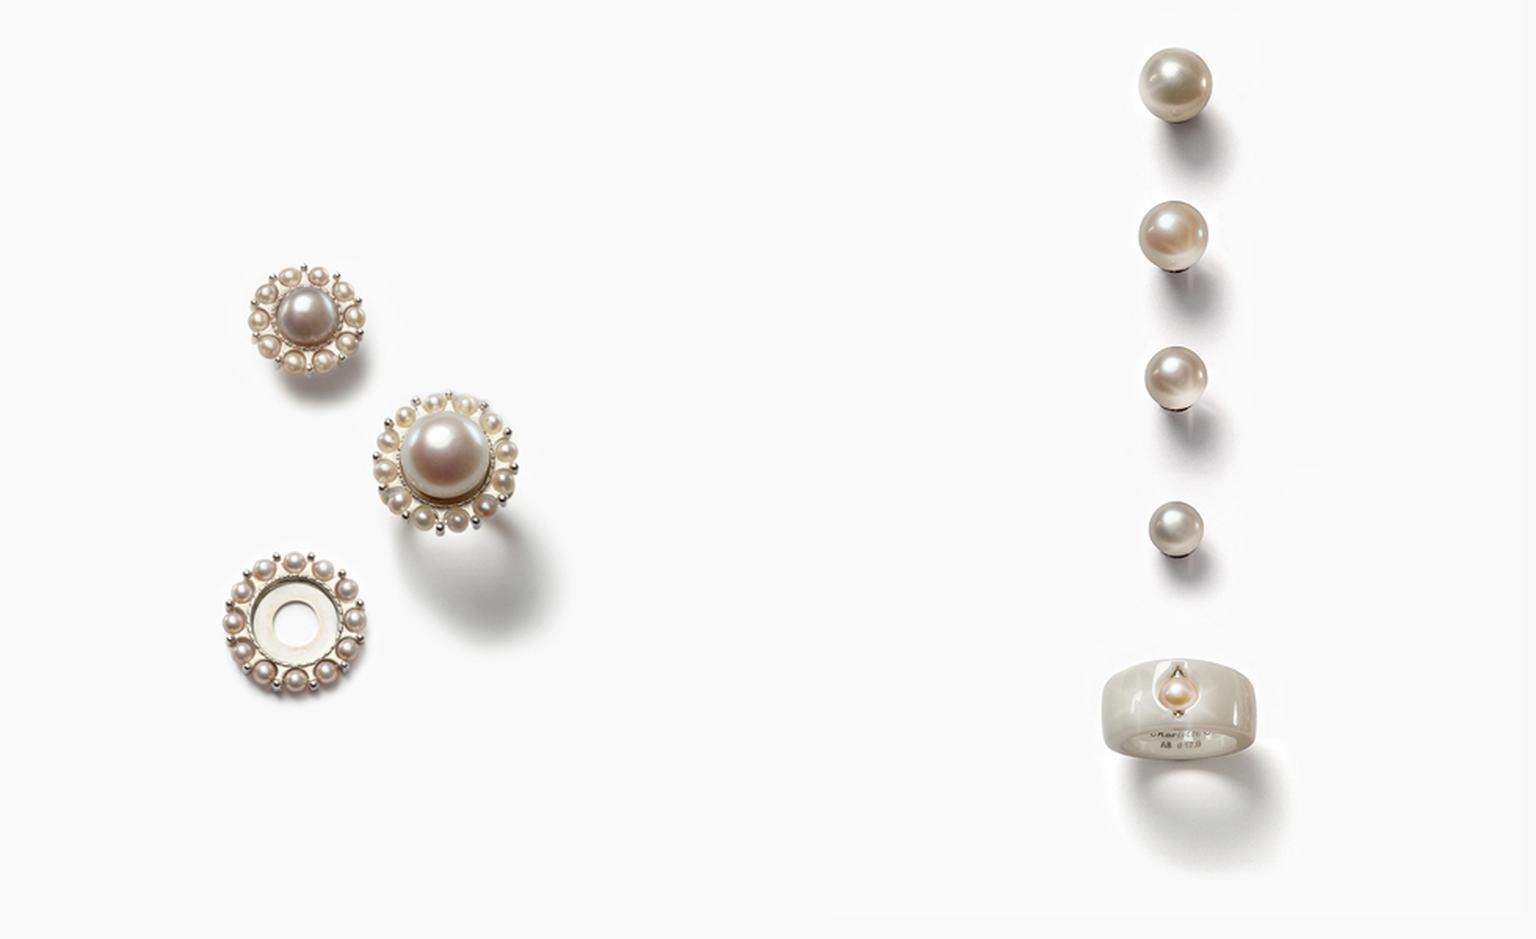 Charlotte Ehinger-Schwarz 1876. Susswasserperlin. Pearl wreath sterling silver. Fresh water pearls. White ceramic ring. All pieces sold separately. Prices start from £70.